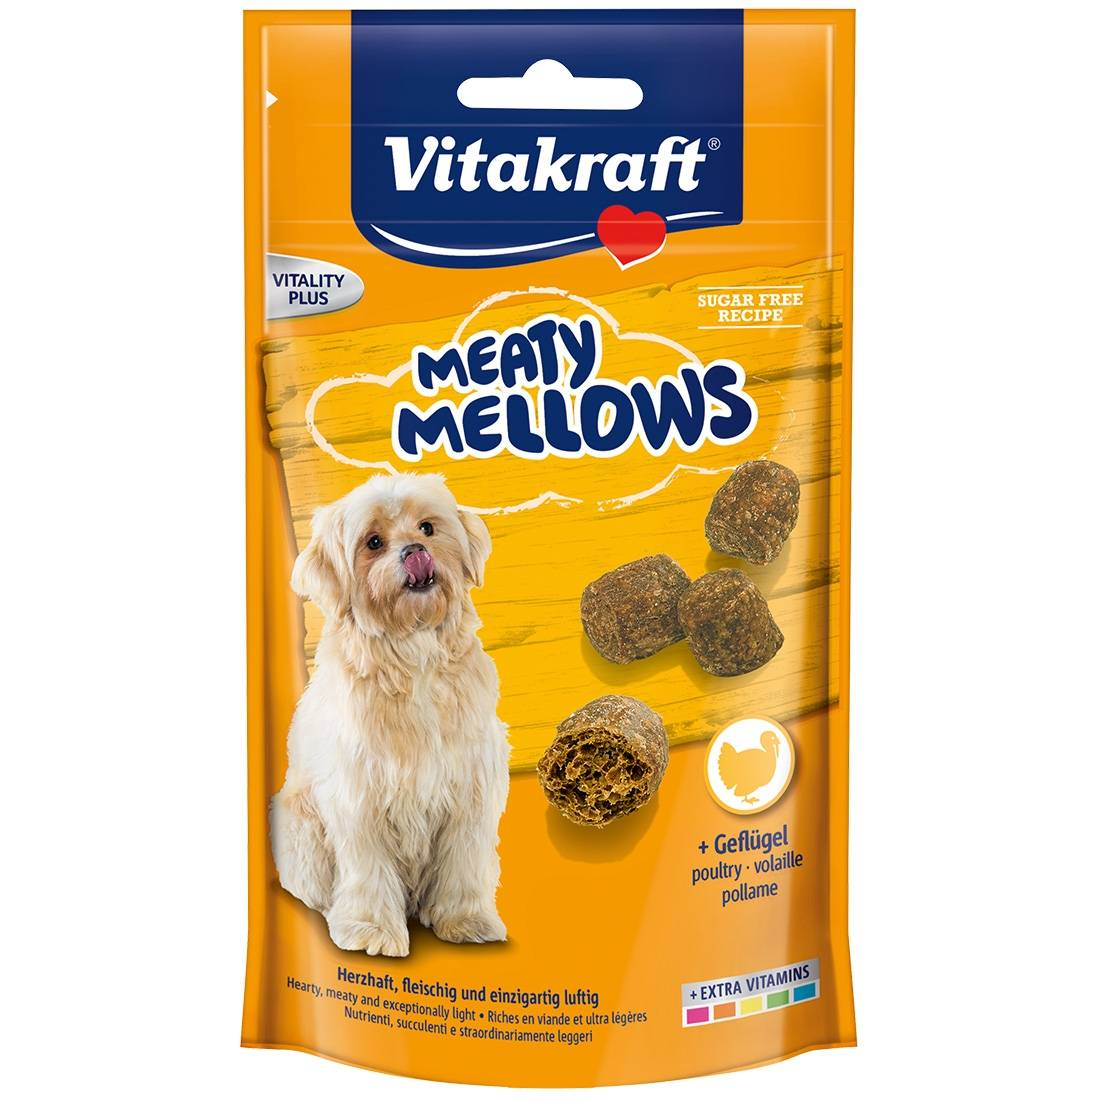 Vitakraft Friandise pour chien Vitakraft Meaty Mellows à la volaille Contenance : 120 g